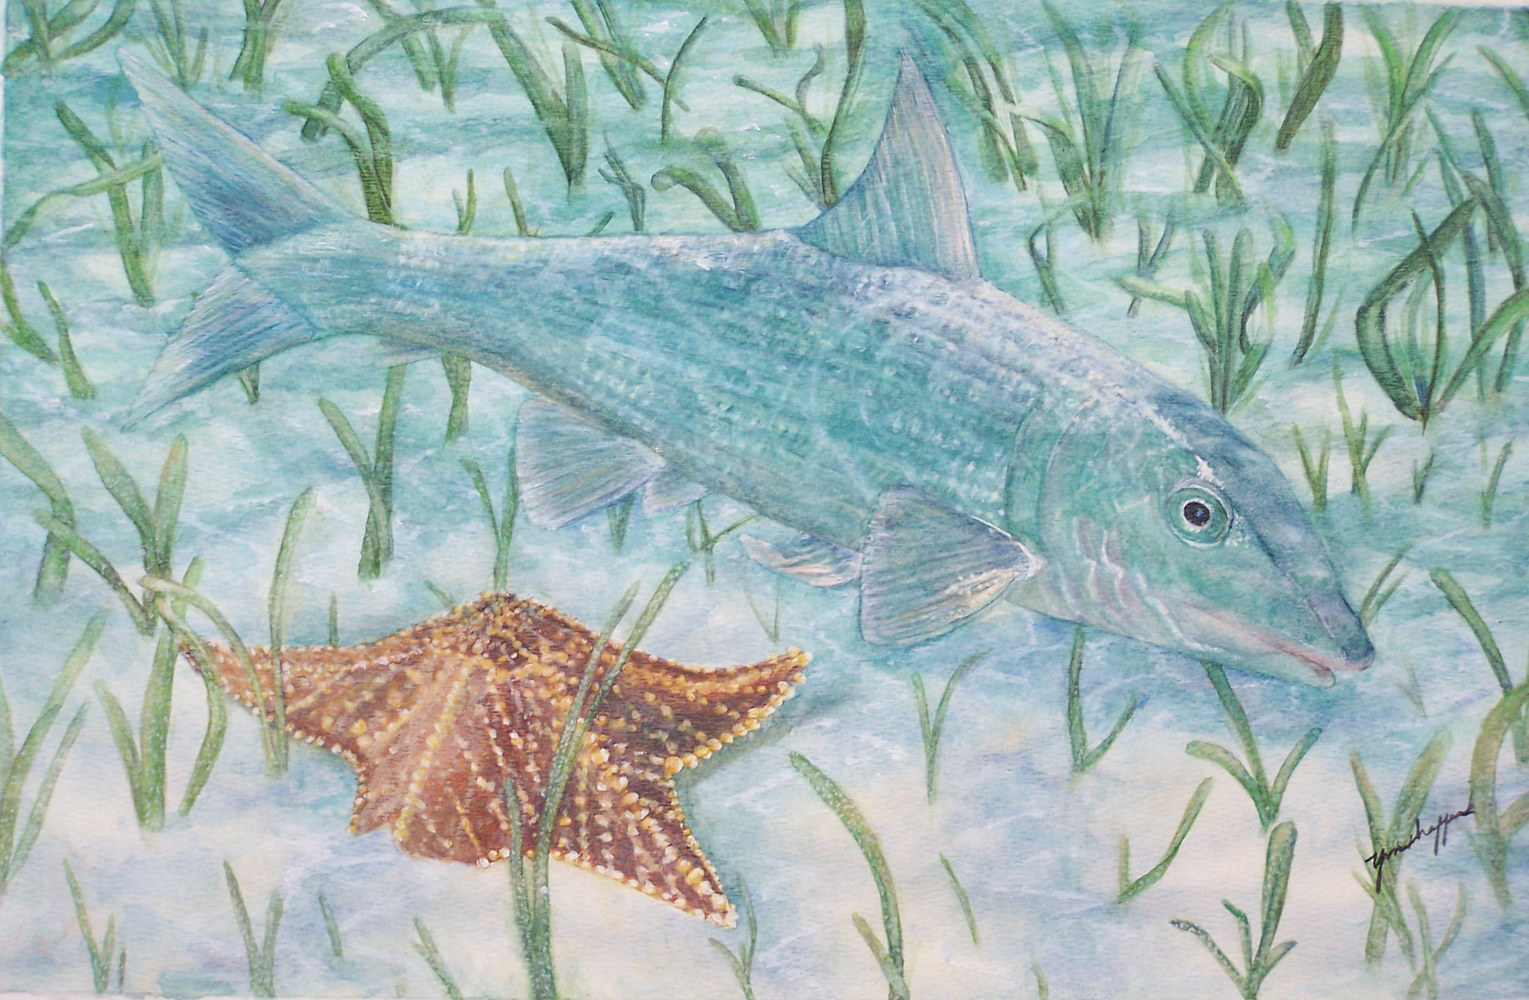 Bonefish by Yvonne Shaffer